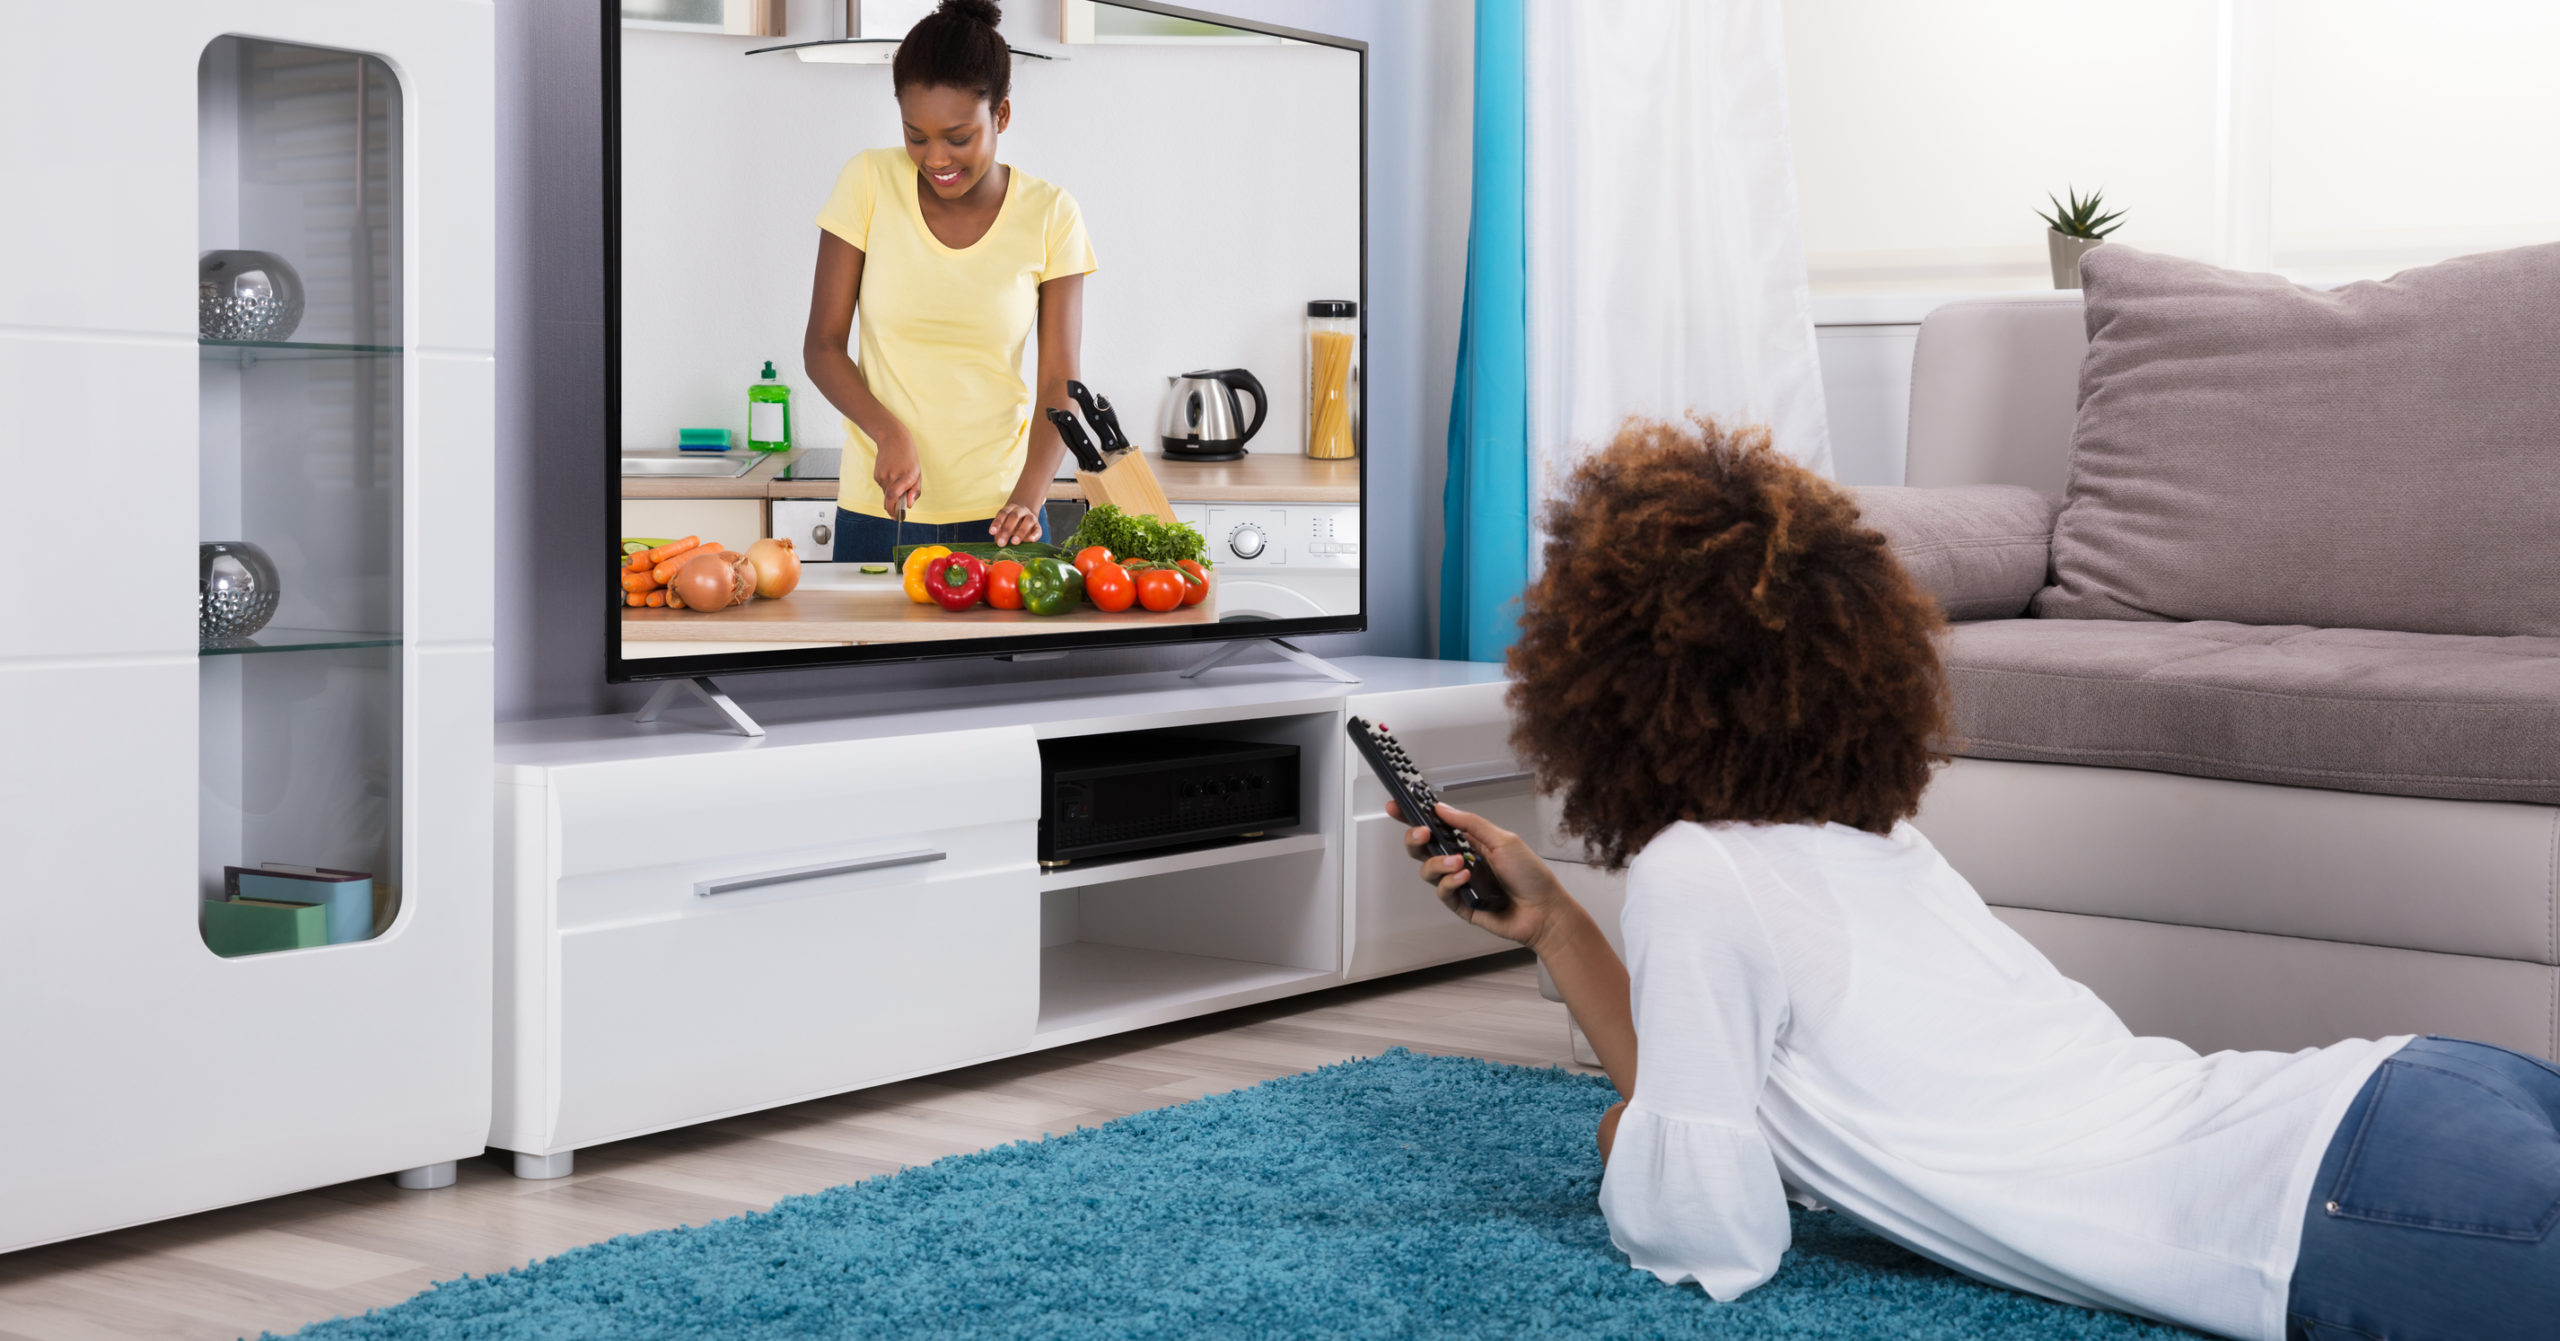 person lying on floor watching television